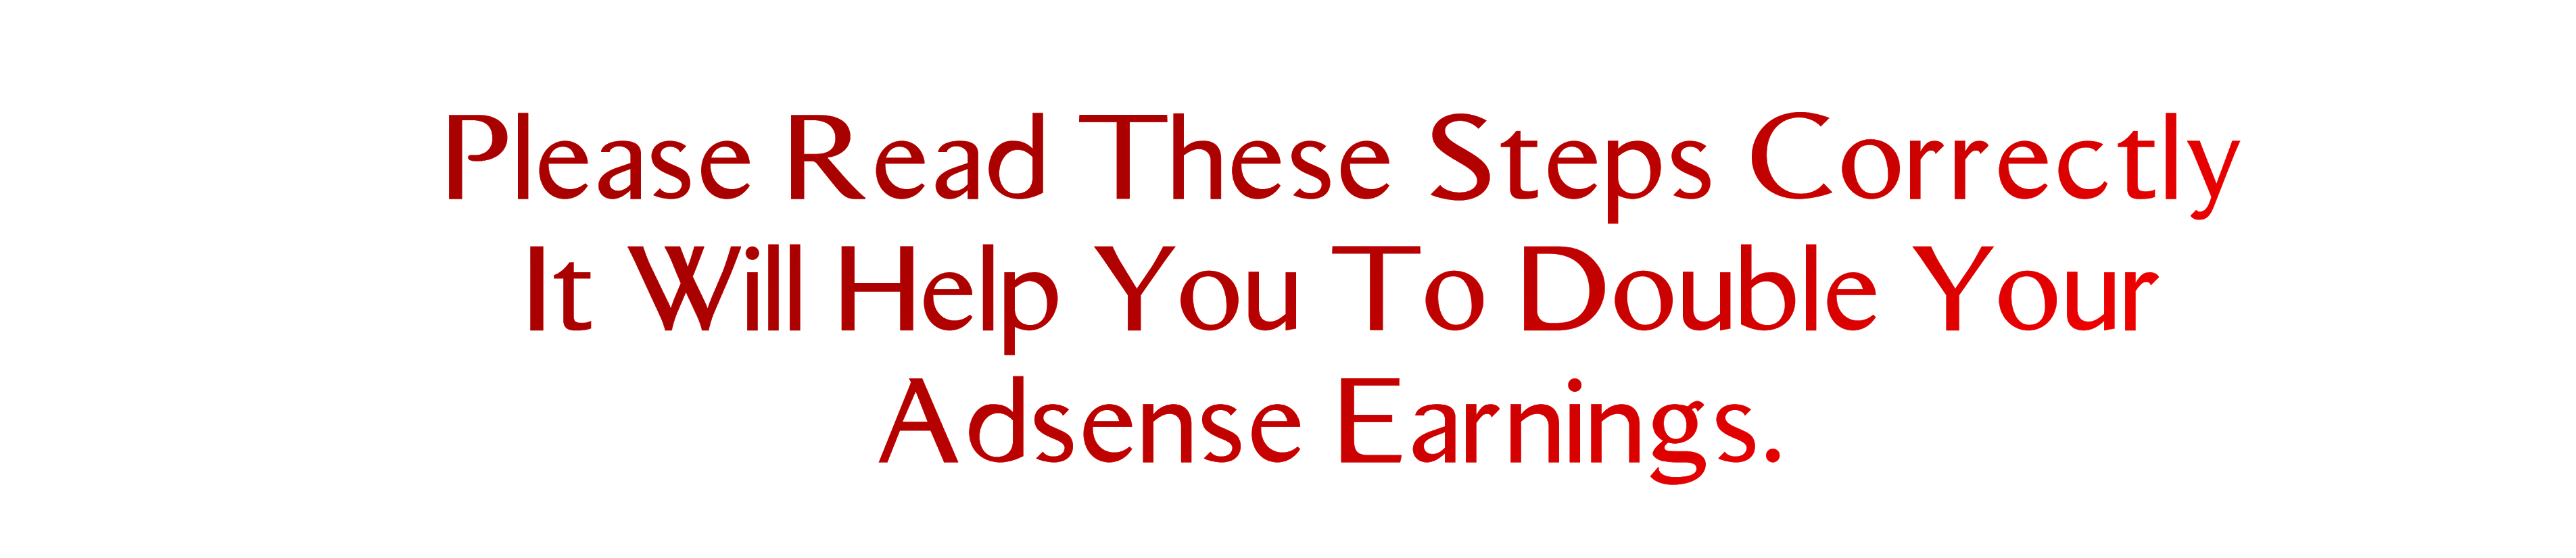 Please Read These Steps Correctly, It Will Help You To Double Your Adsense Earnings.